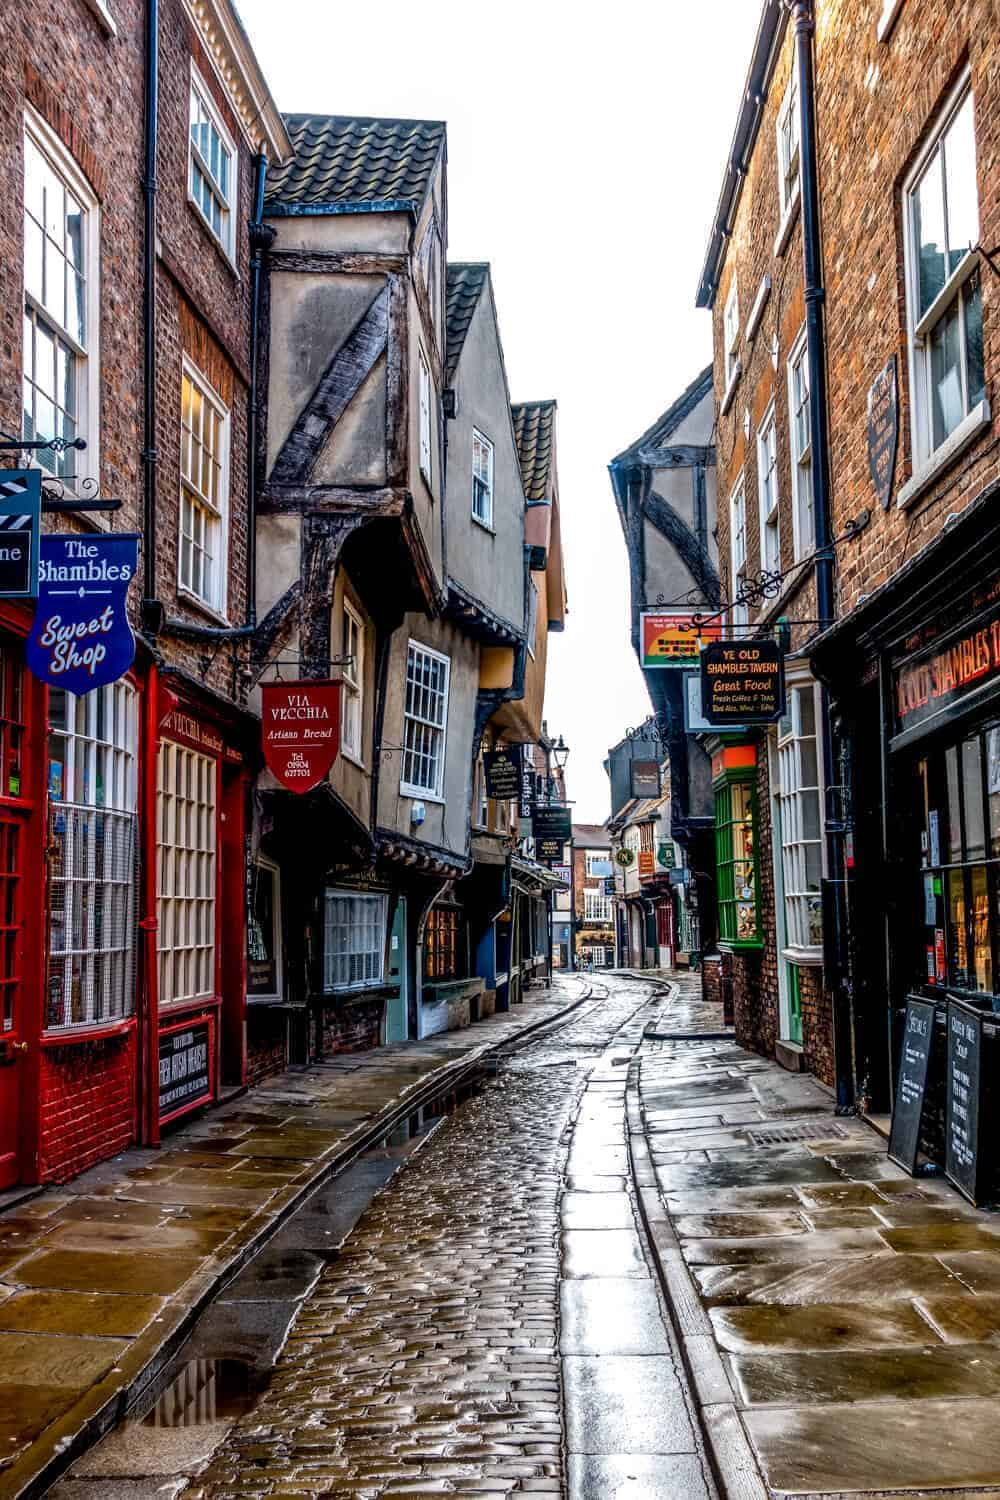 things to do in York the shambles